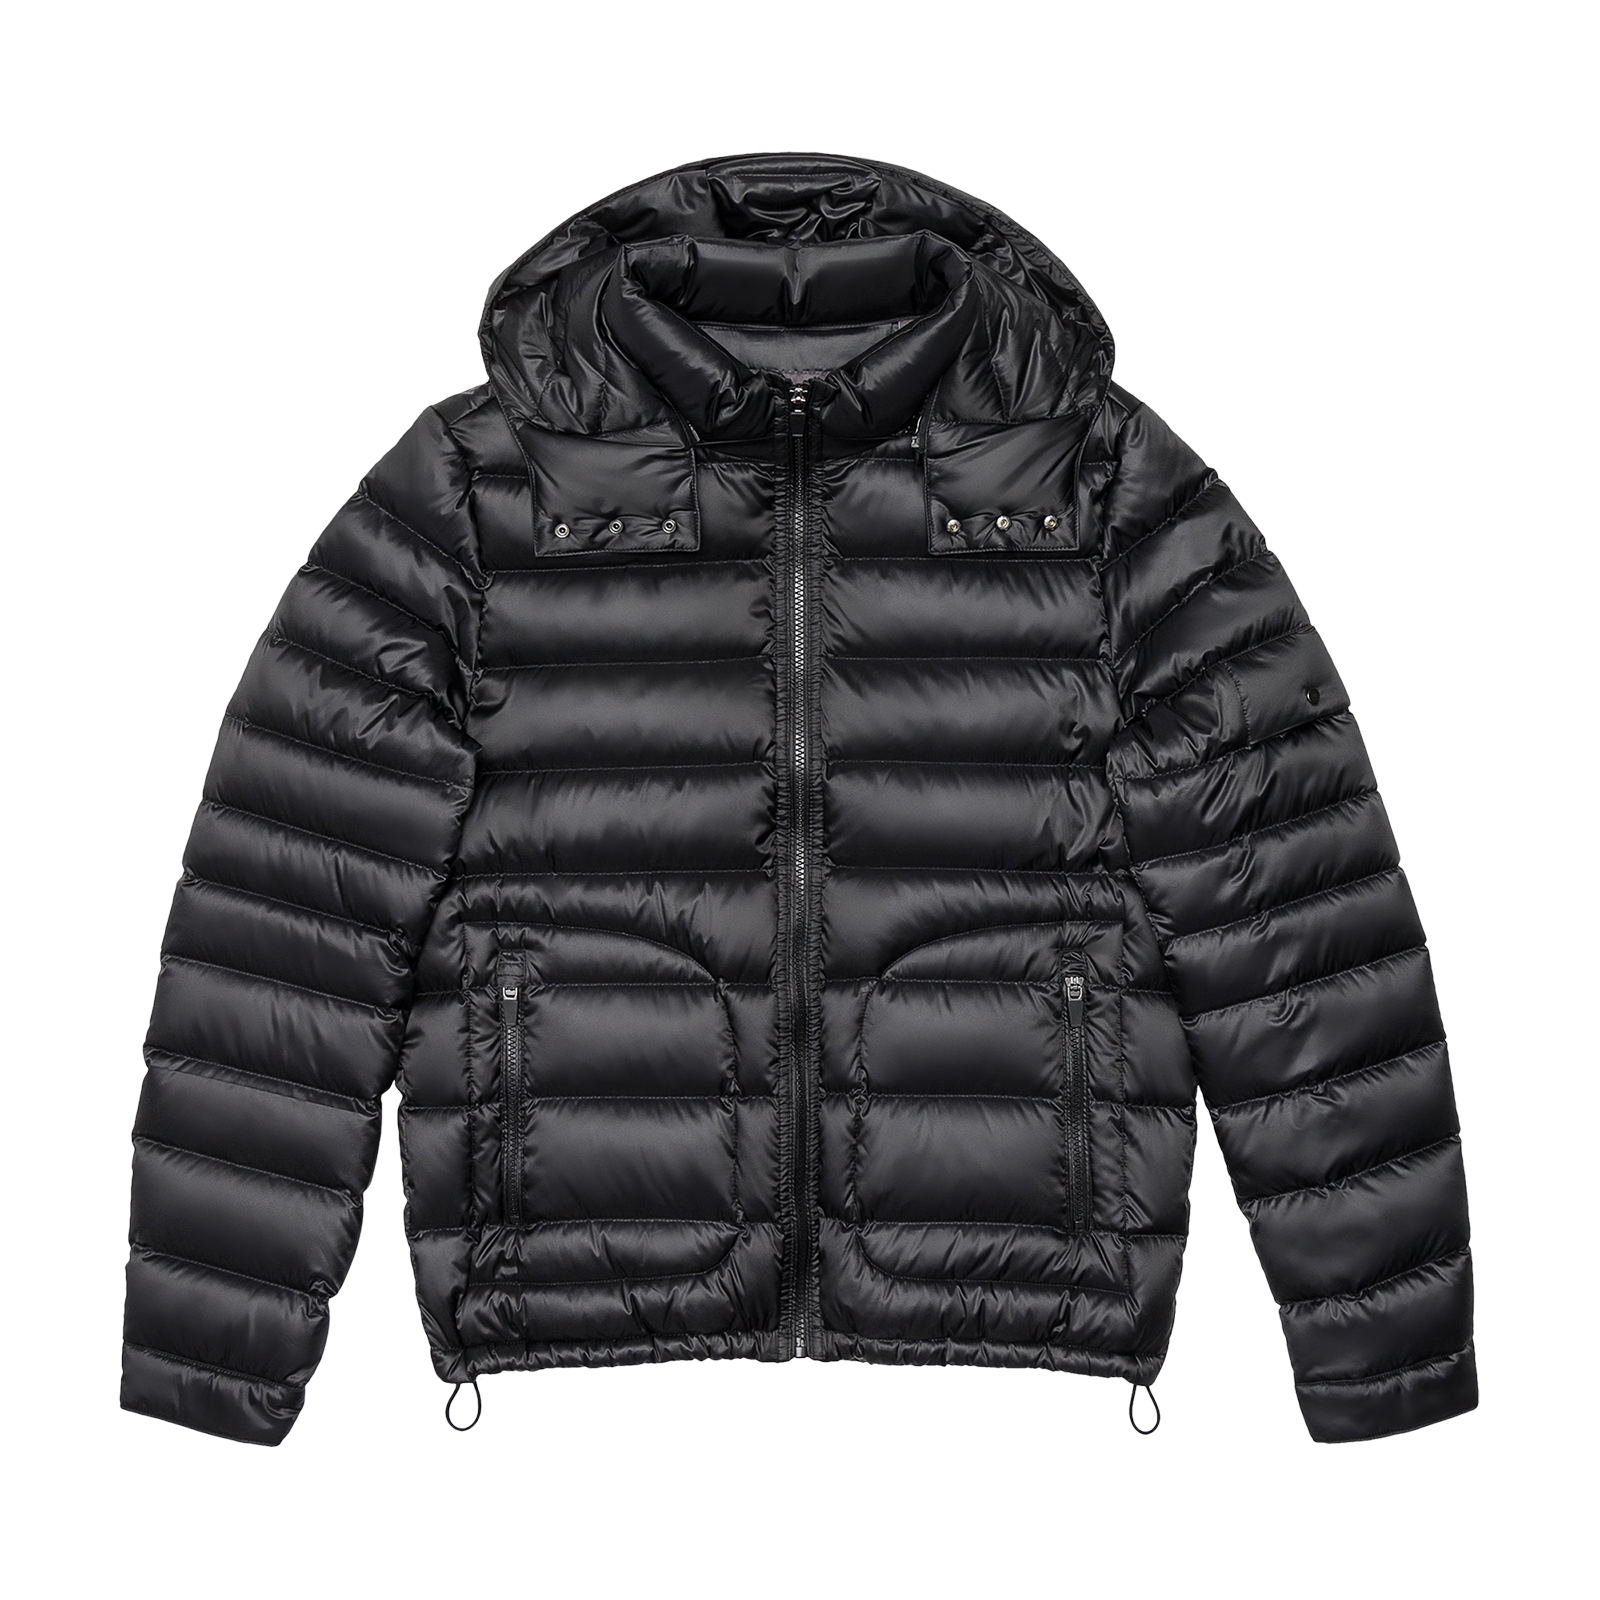 Puffer jacket product picture